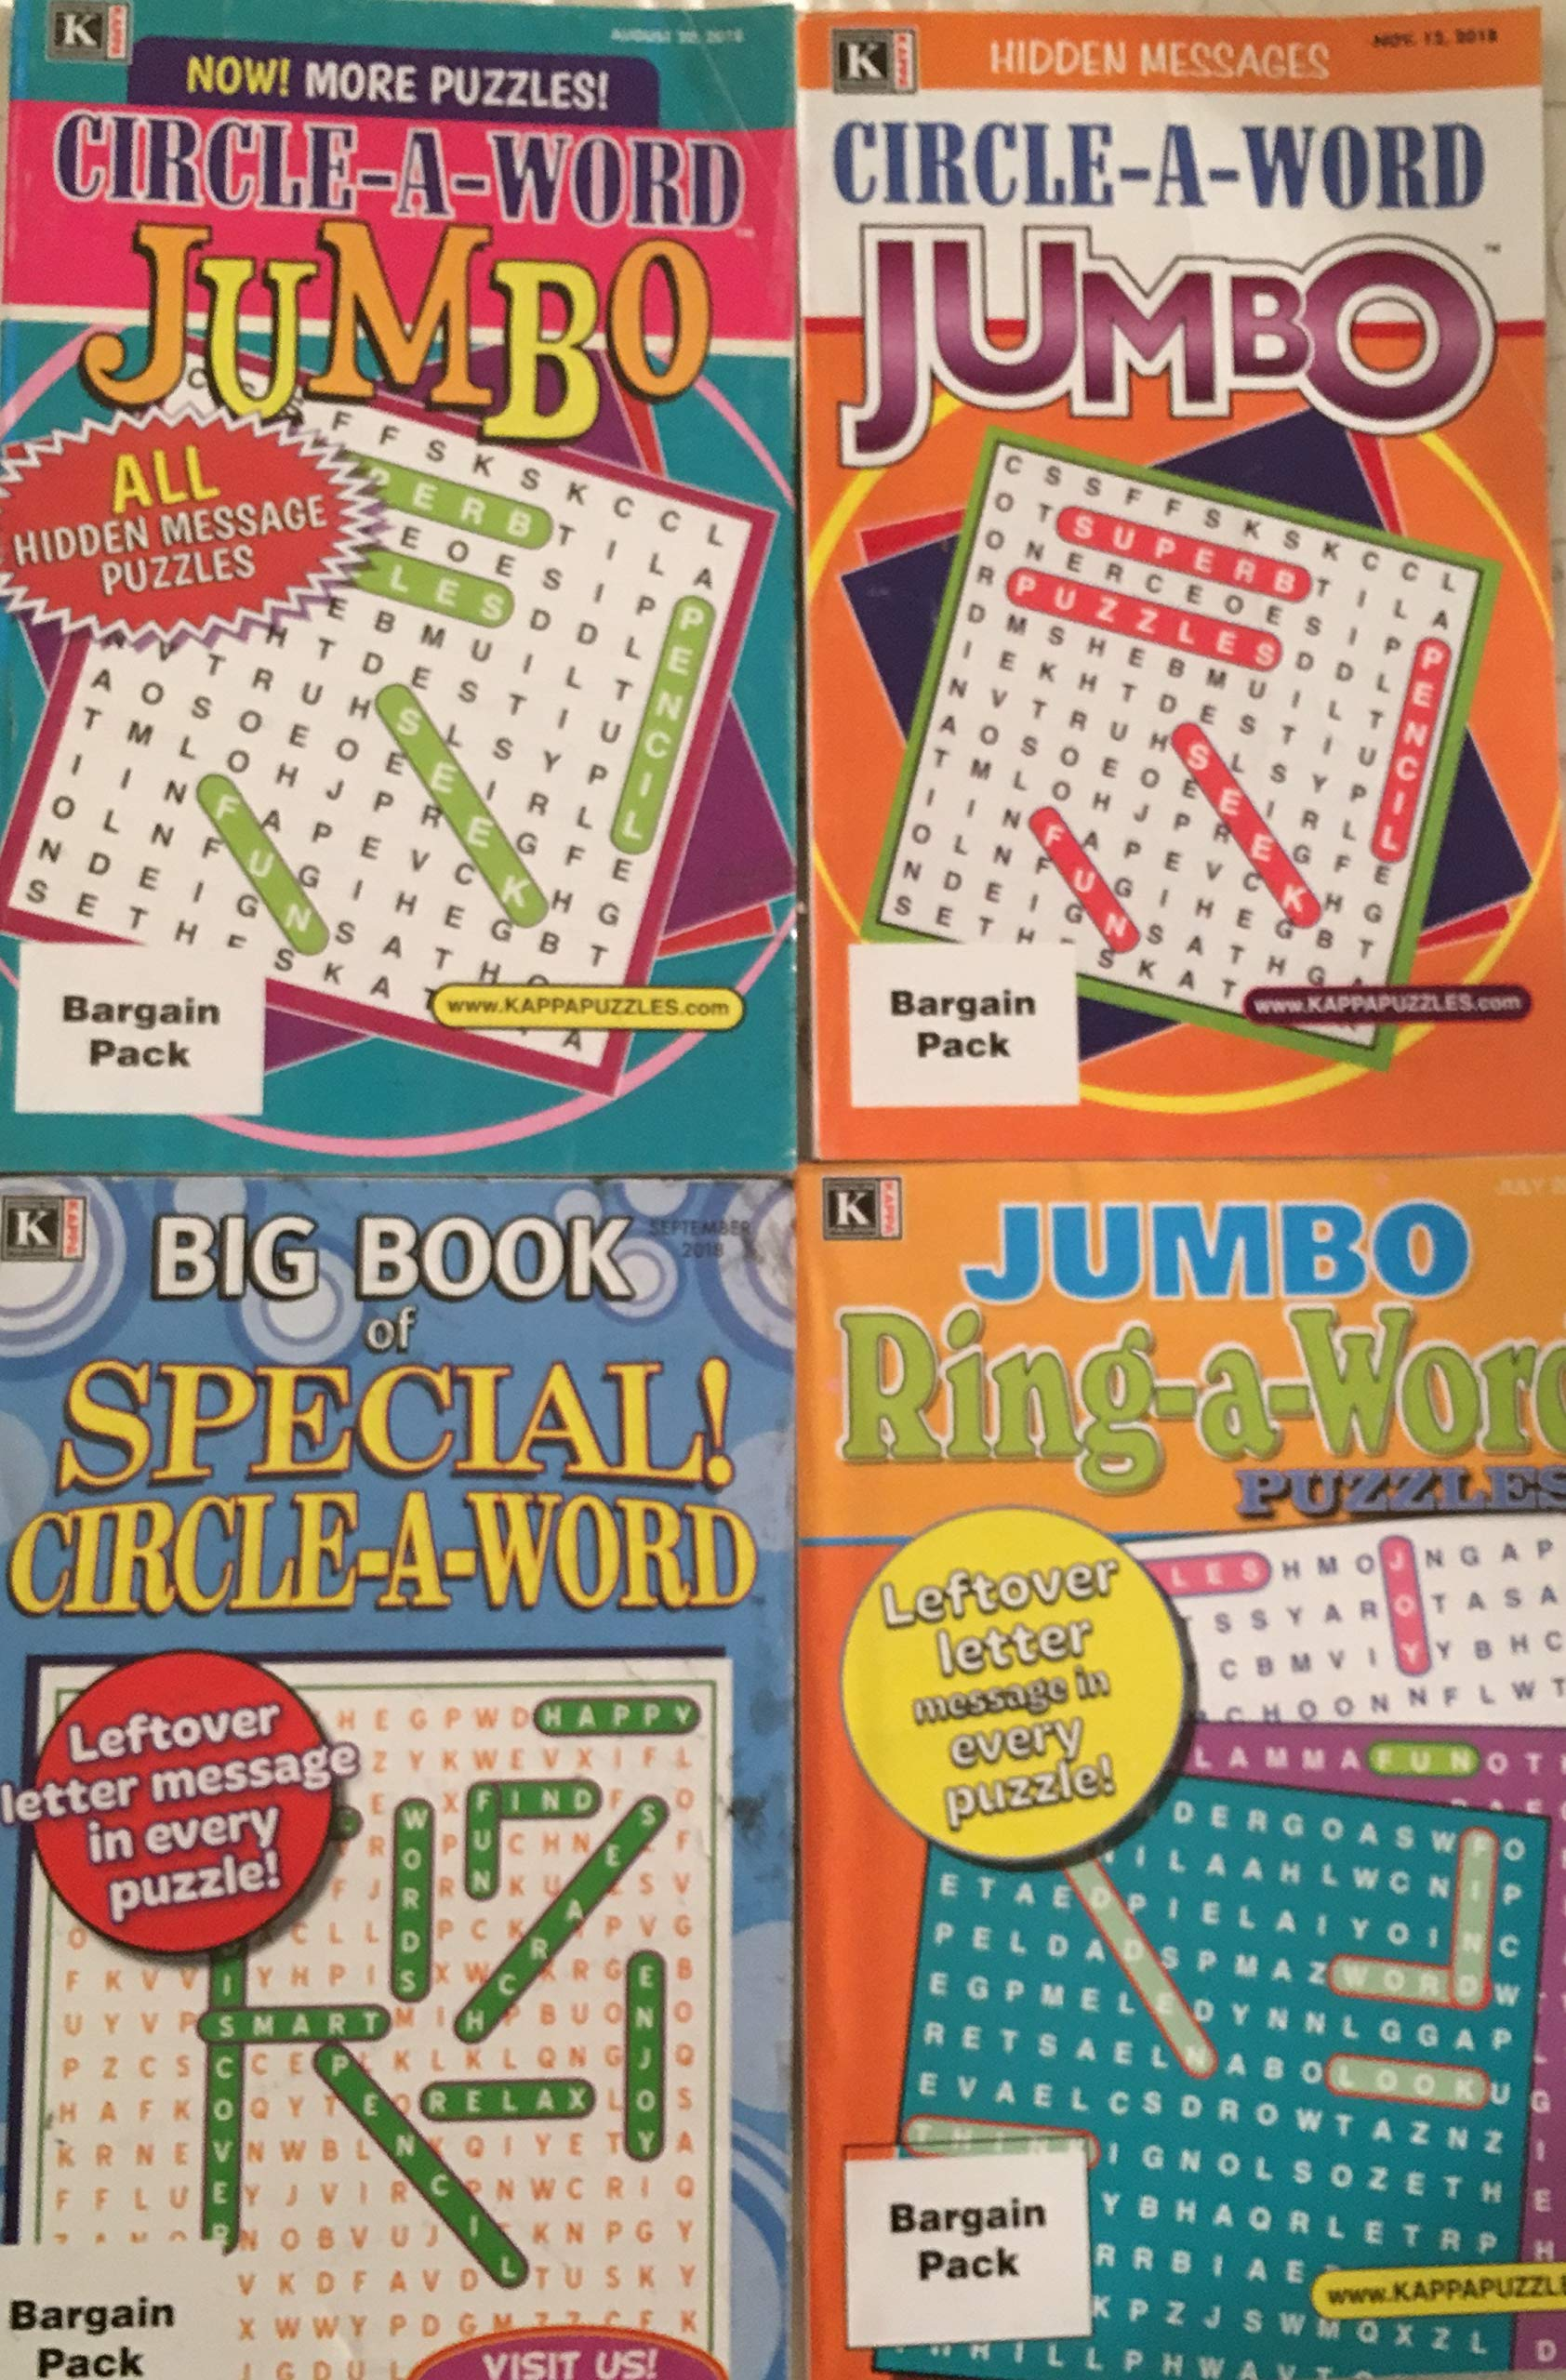 b448ffaa9f Lot of 4 Kappa Superb Ring-A-Word Circle-A-Word Jumbo Leftover ...